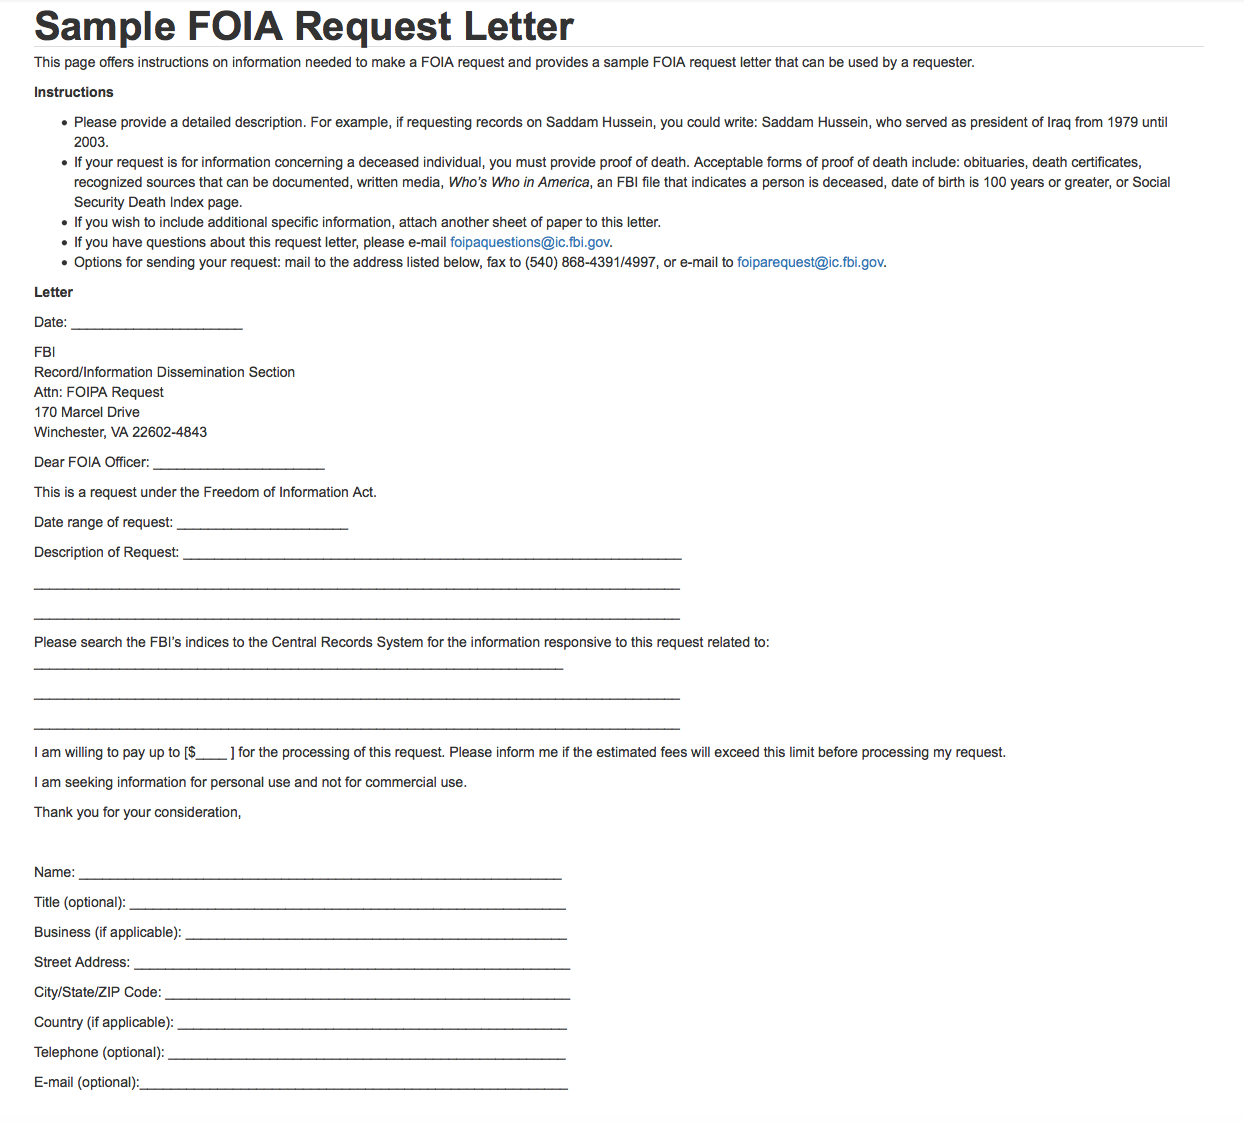 Sample foia request letter fbi expocarfo